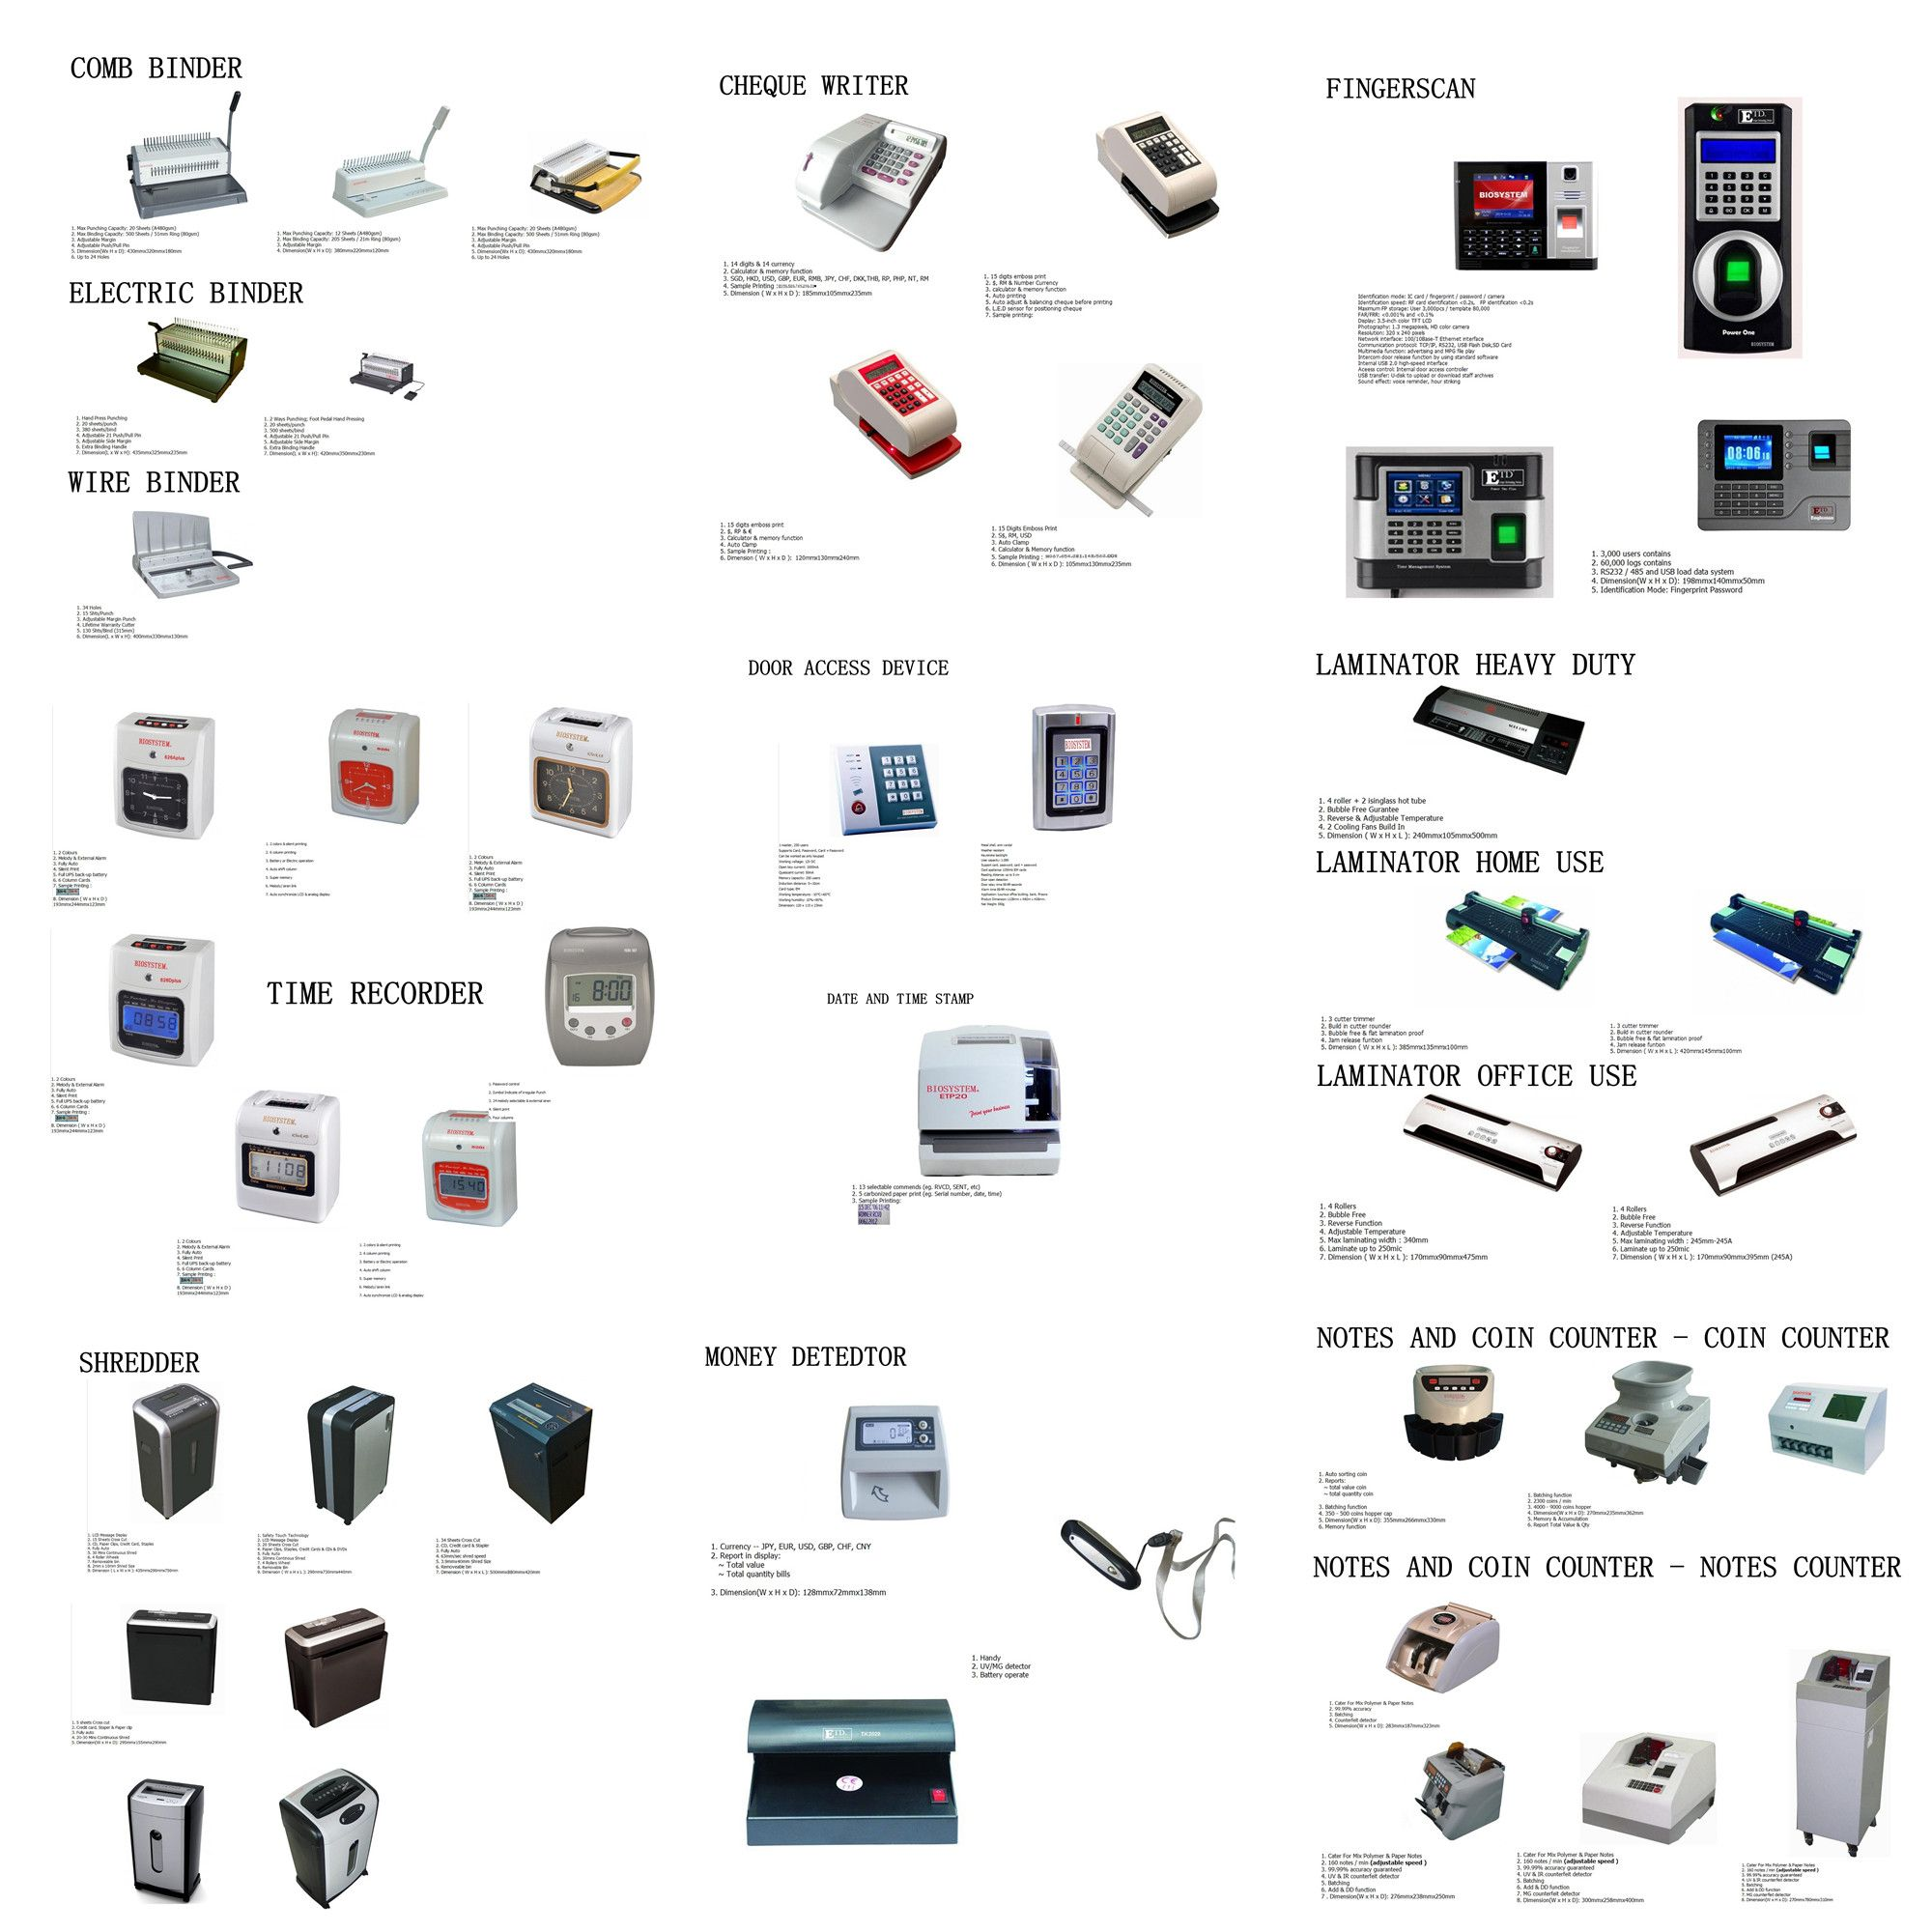 office equipment - Google Search | Work | Pinterest | Search and ...